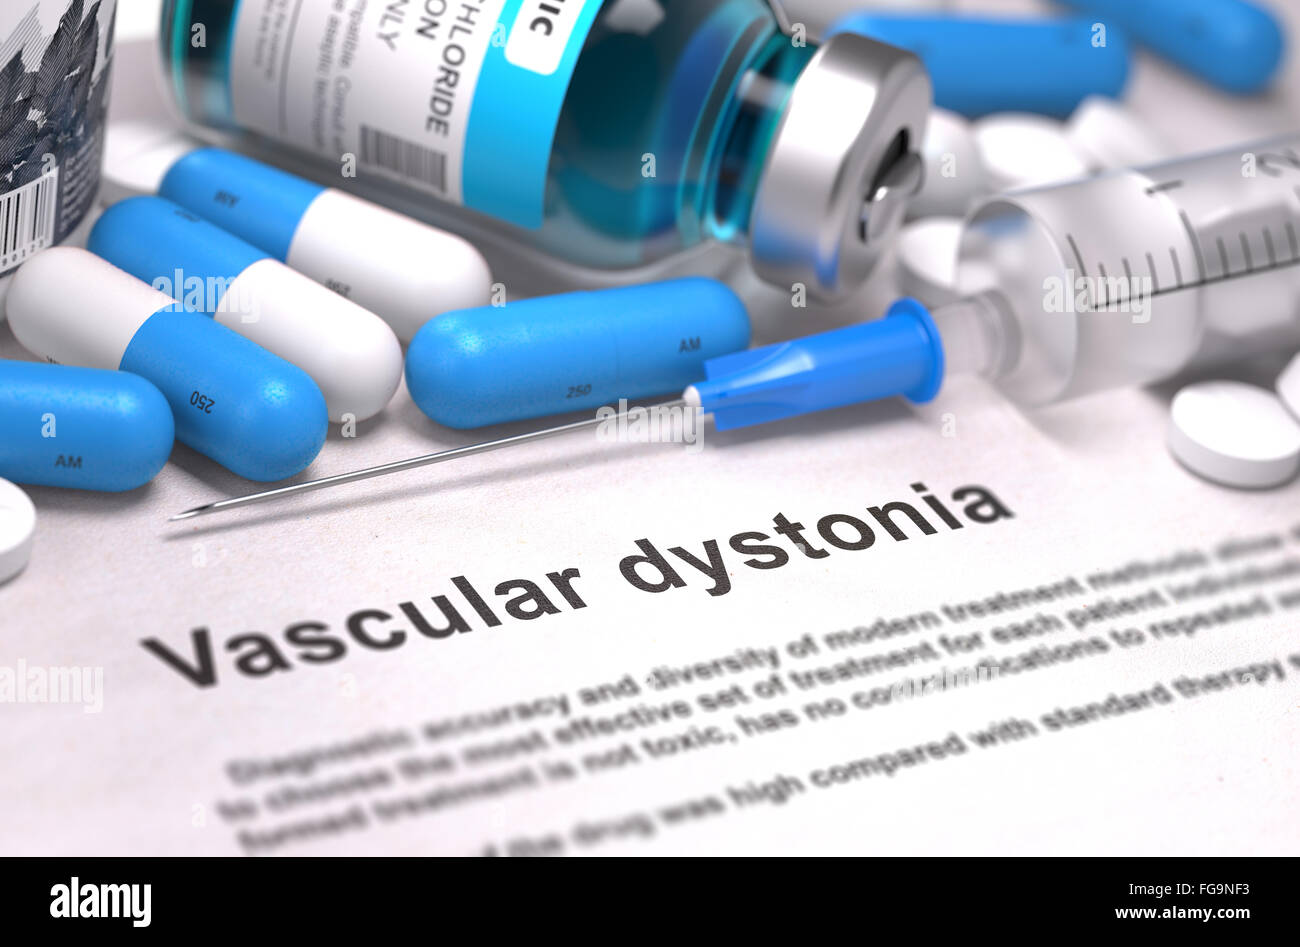 What is vascular dystonia How to treat it 93